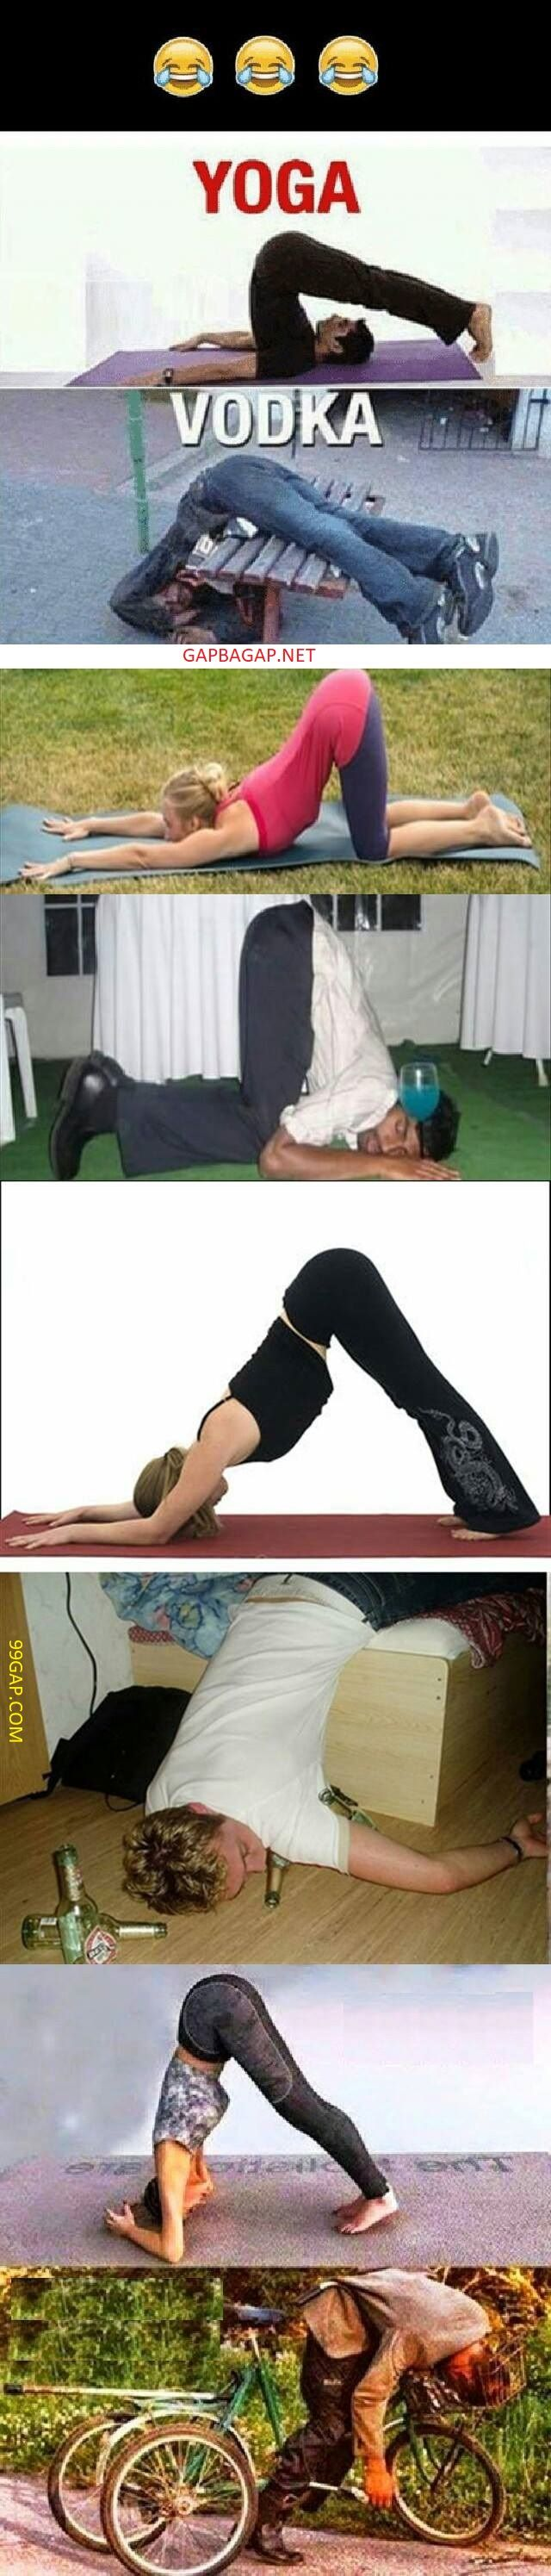 Funniest Memes About Yoga Vs Vodka Funny Pictures Marine Jokes